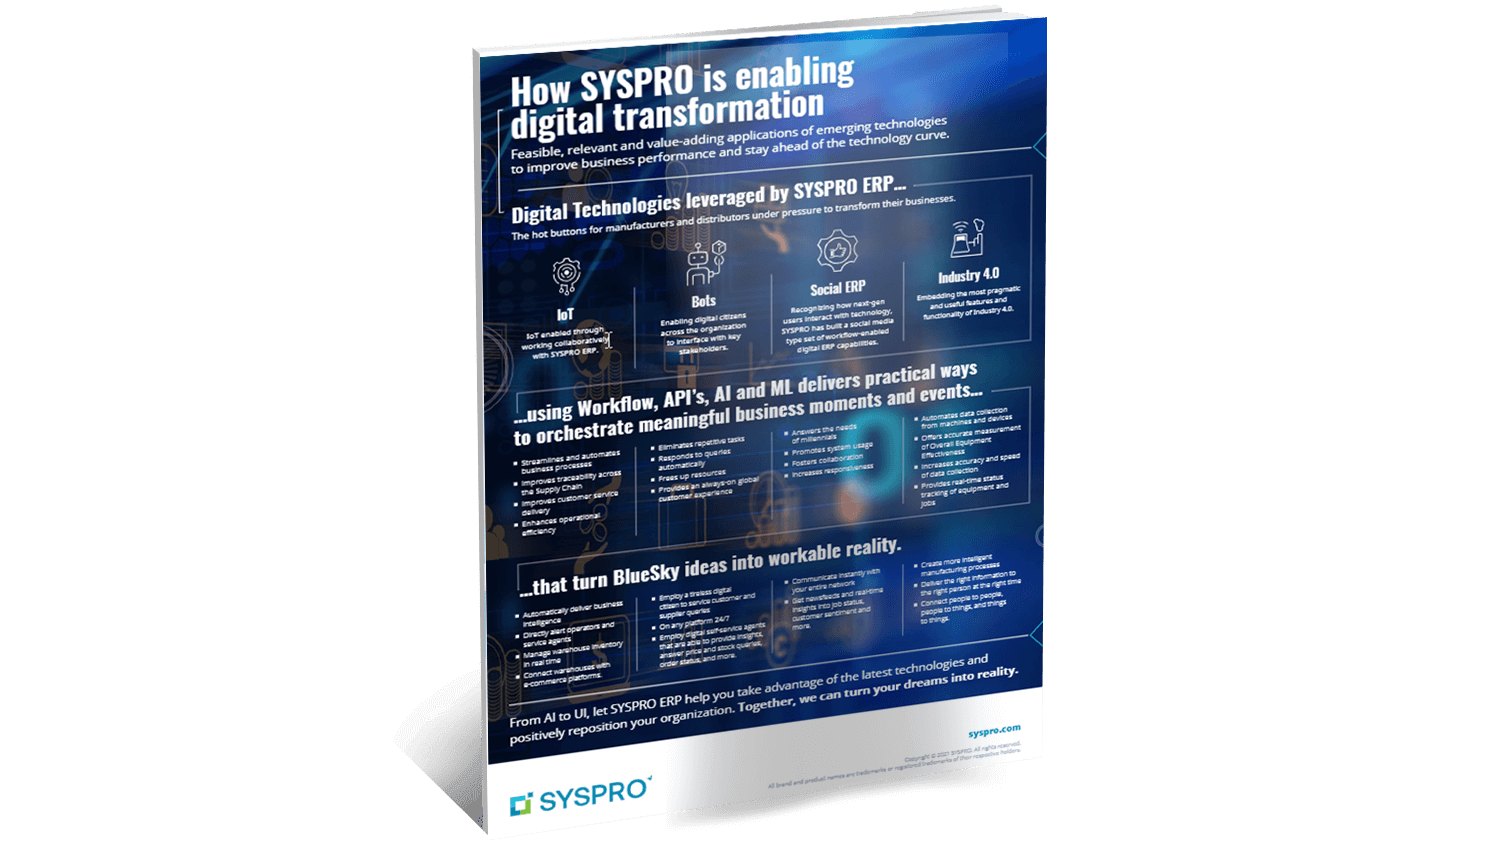 SYSPRO-ERP-software-system-enable-digital-transformation-infographic-